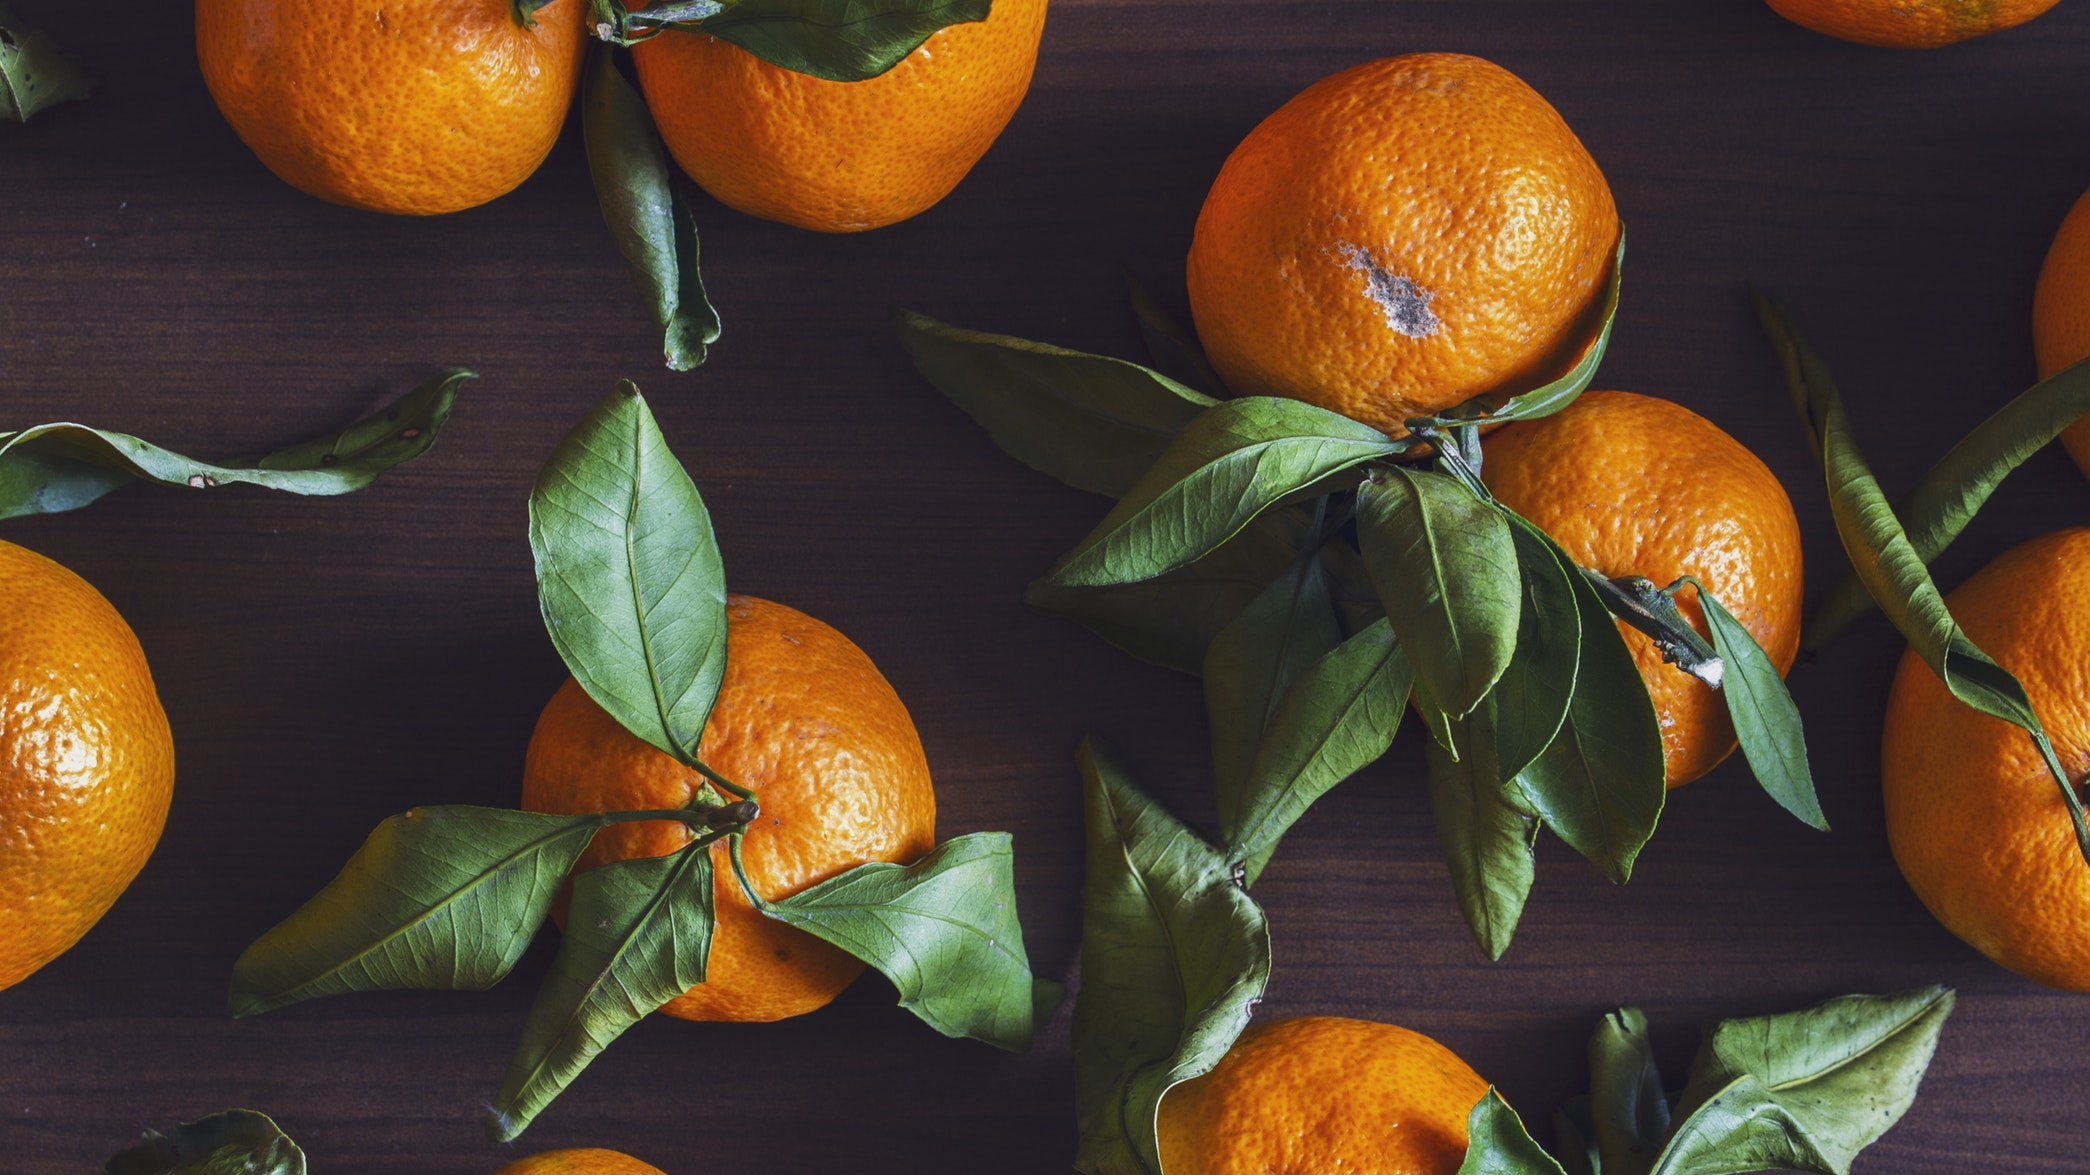 Picture of some oranges on top of a table